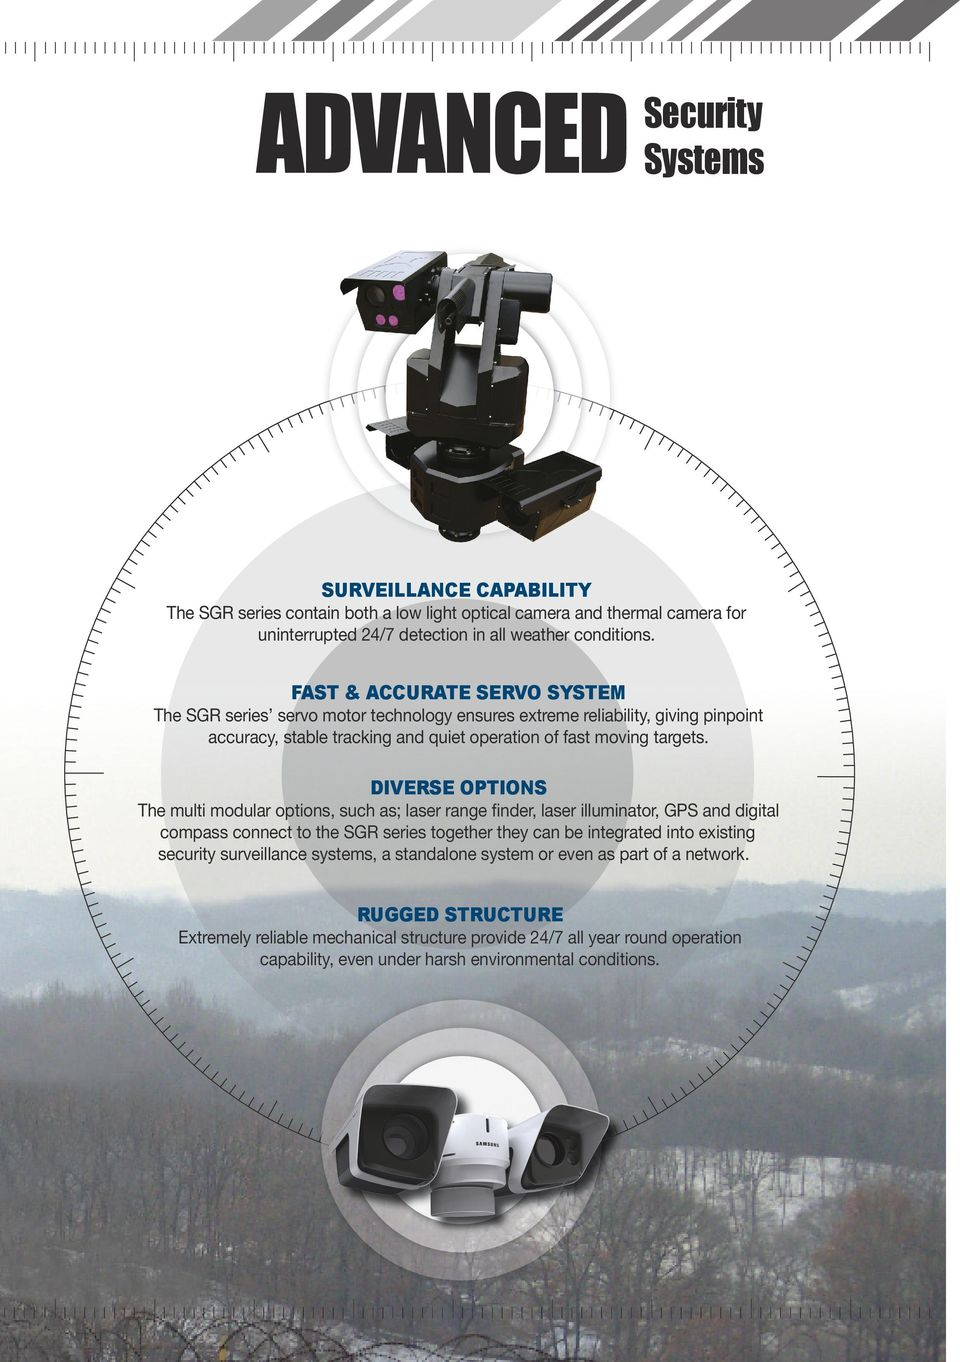 DIVERSE OPTIONS The multi modular options, such as; laser range finder, laser illuminator, GPS and digital compass connect to the SGR series together they can be integrated into existing security